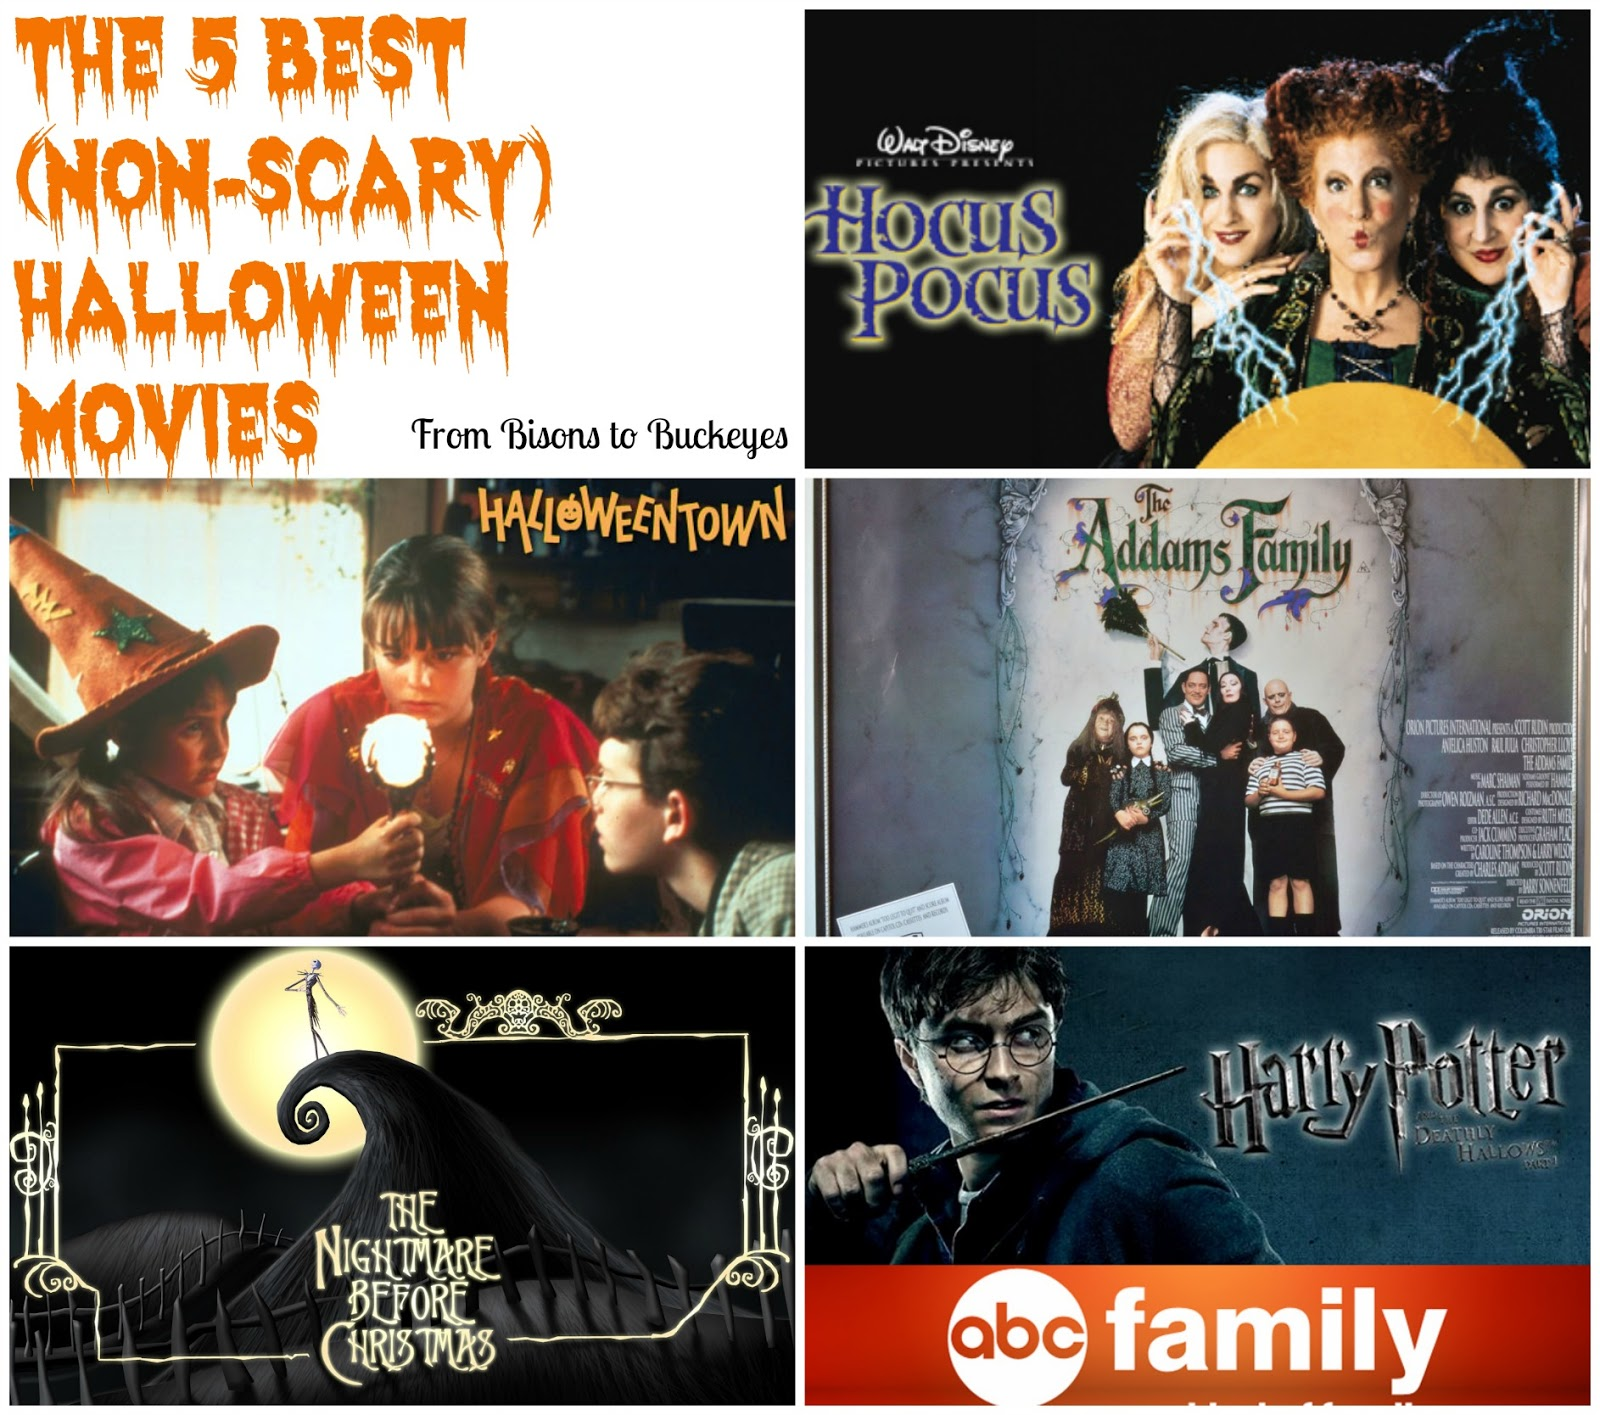 Non Scary Halloween Movies So in honor of having only one more week of October, I thought I'd share my five favorite (non-scary) Halloween movies today for Five on Friday!